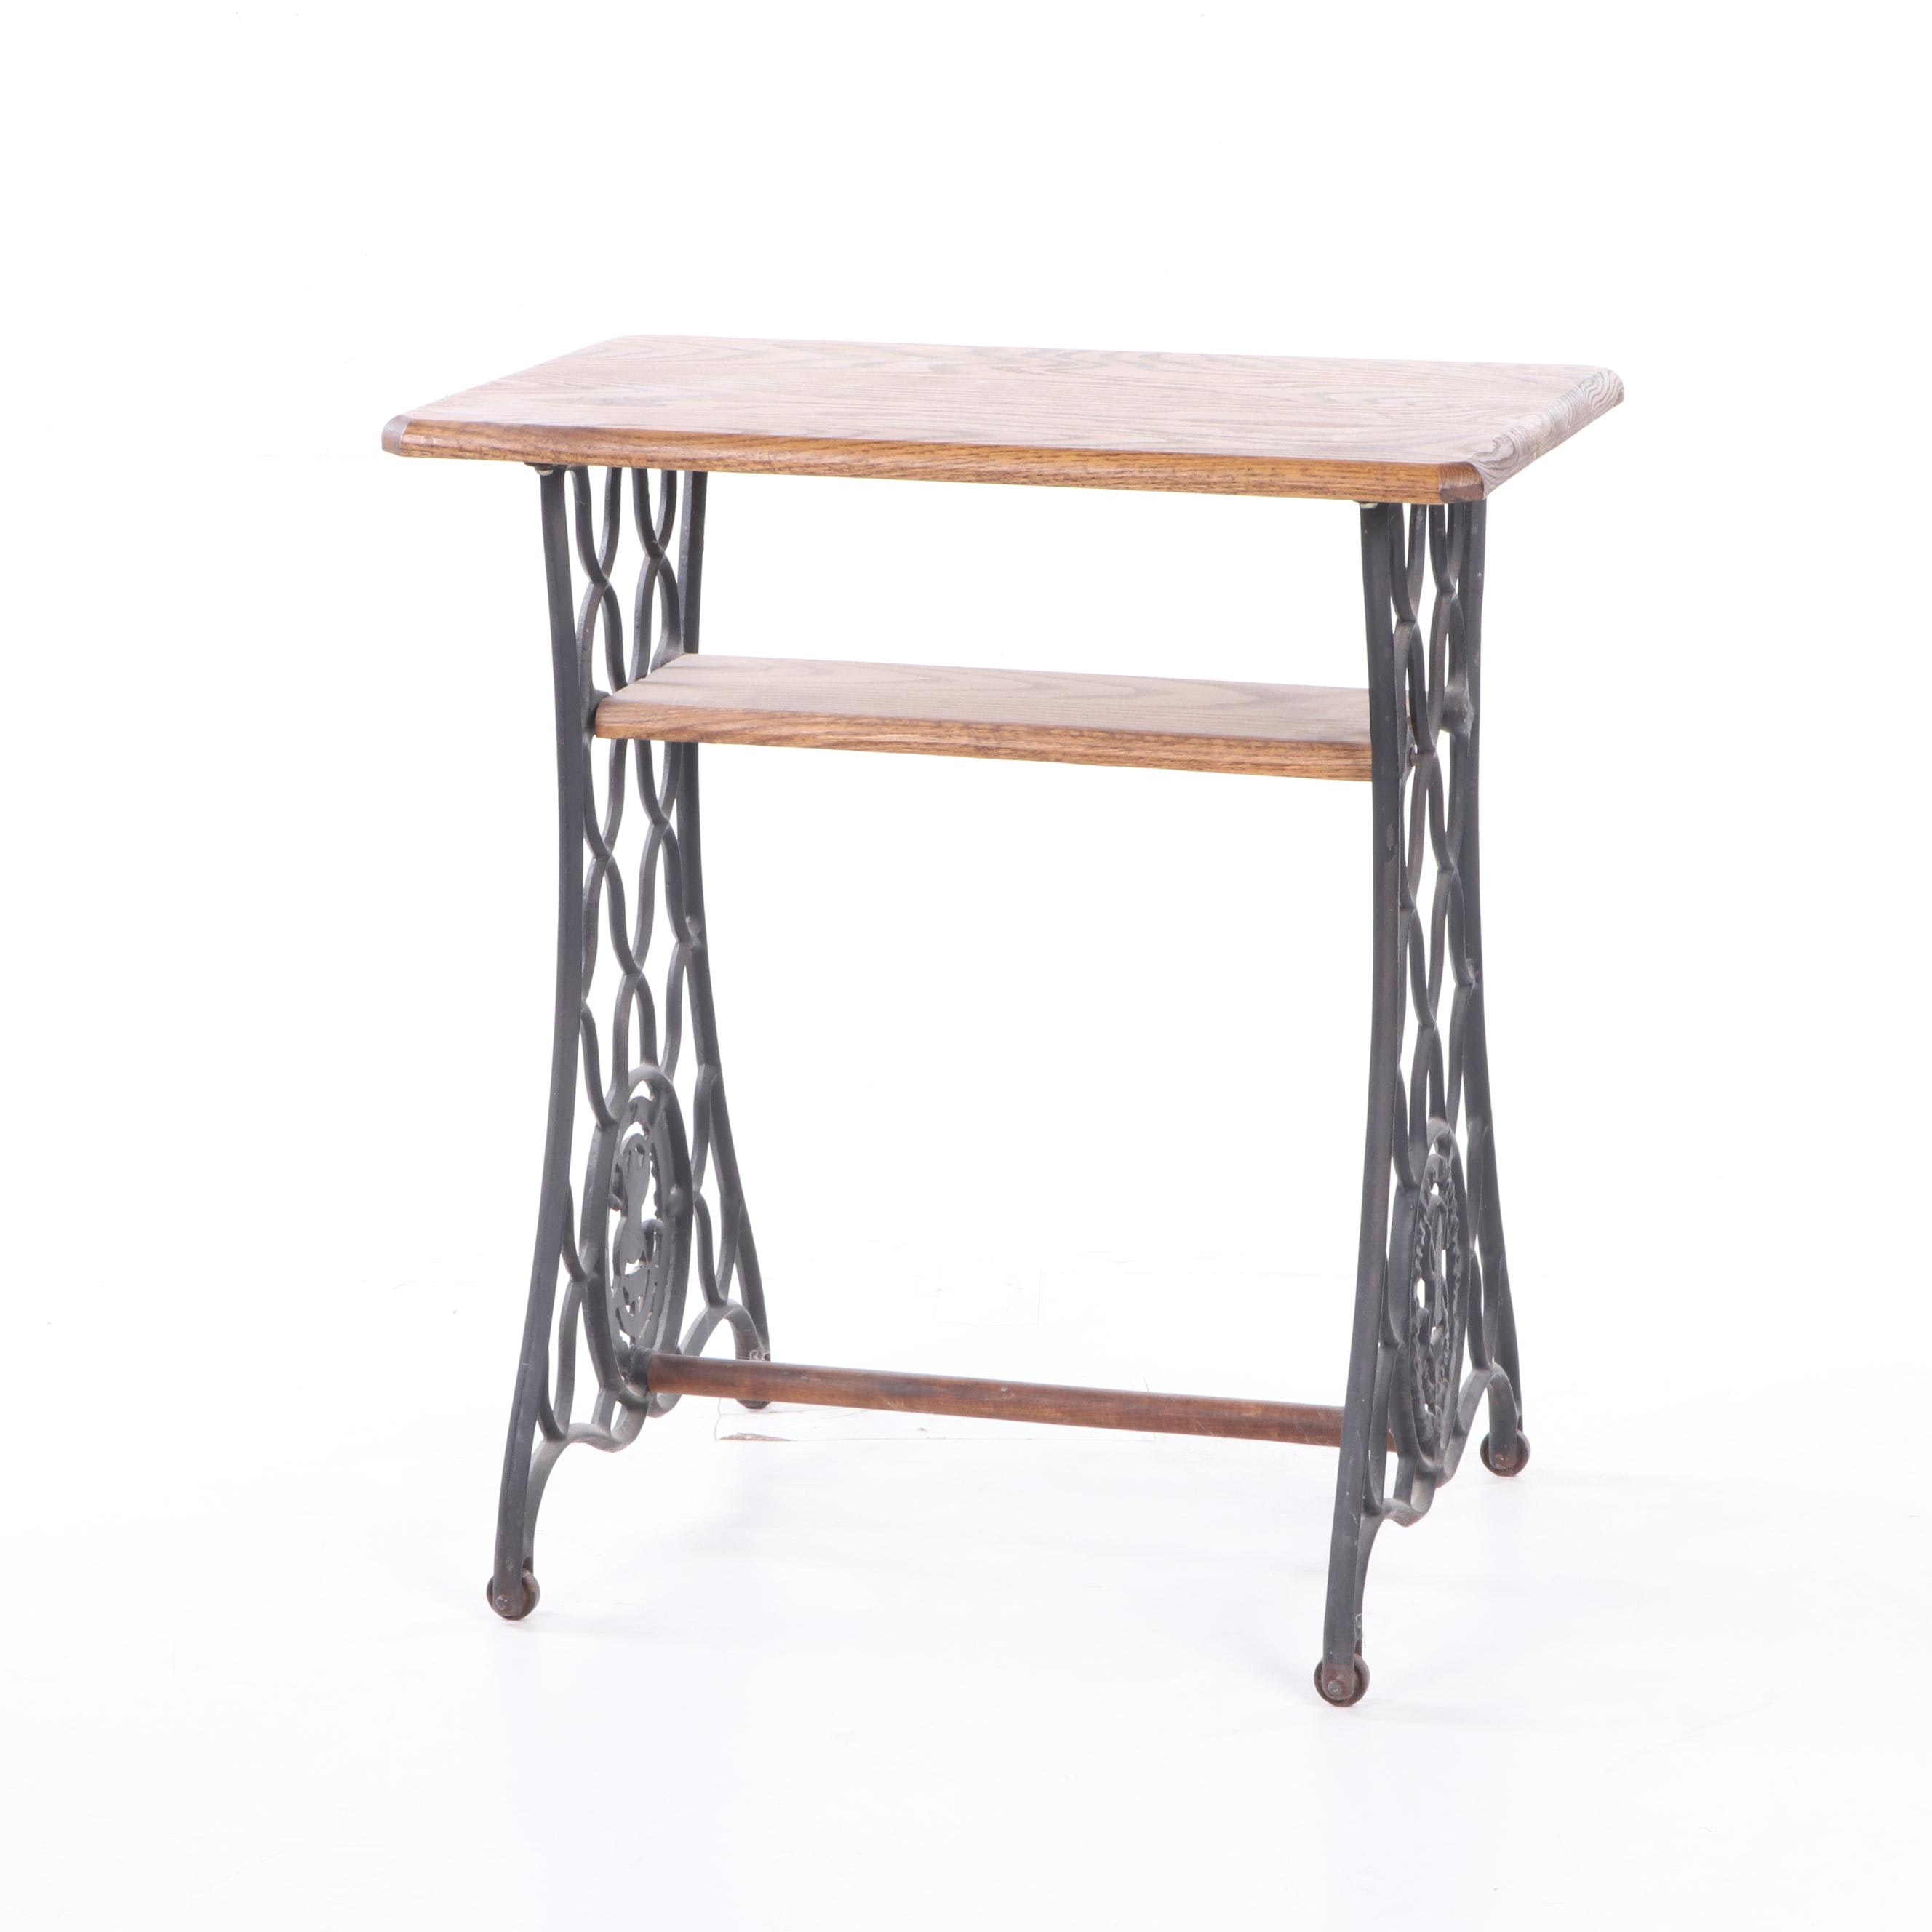 Cast Iron Singer Sewing Table Treadle Base with Oak Table Top, 1920s and Later